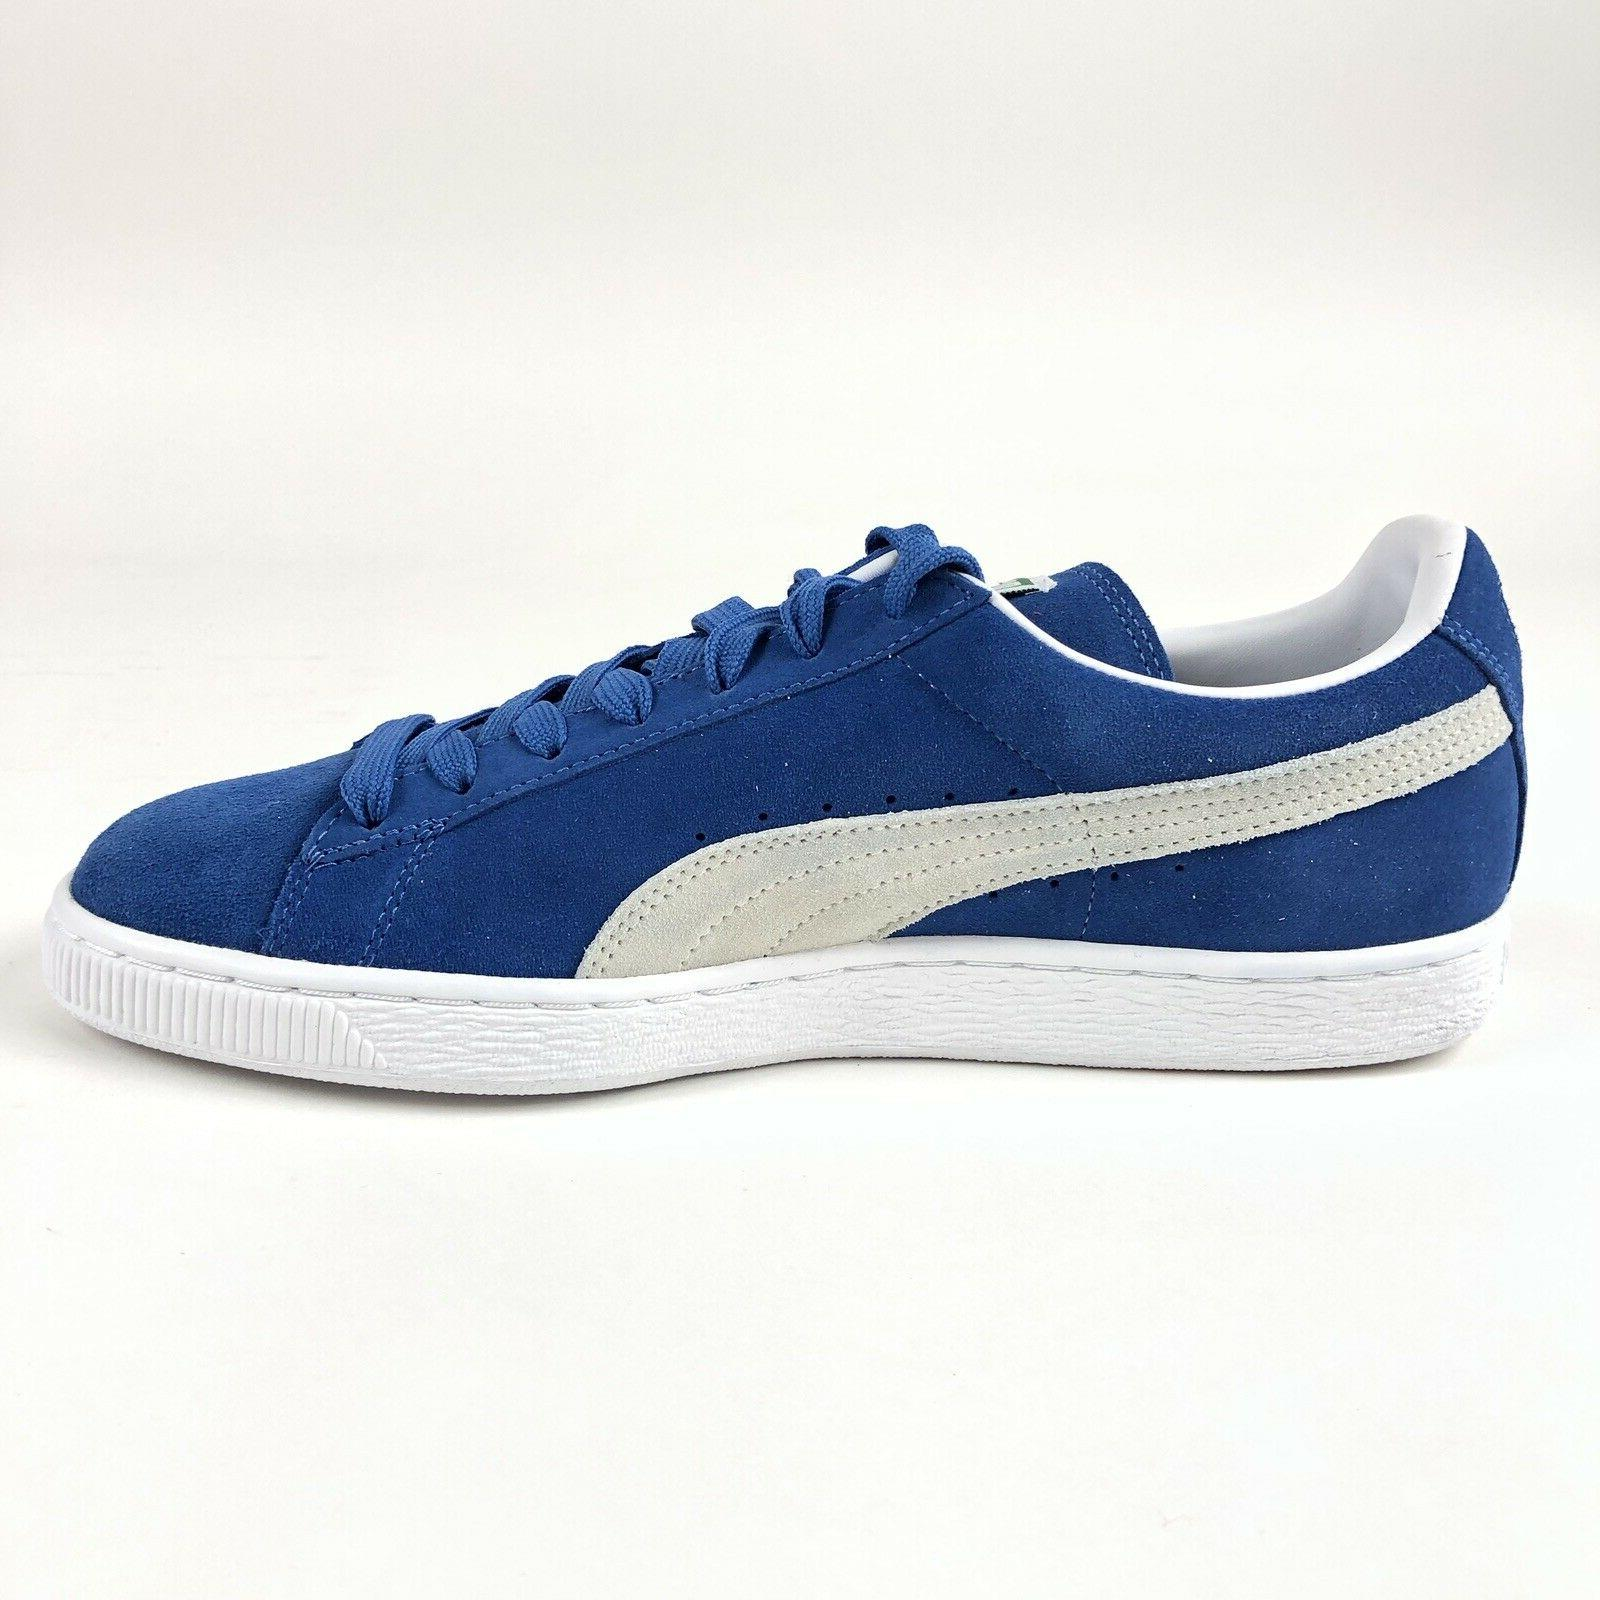 Puma Olympia Blue Low Tennis Shoes Size 12 Shoes